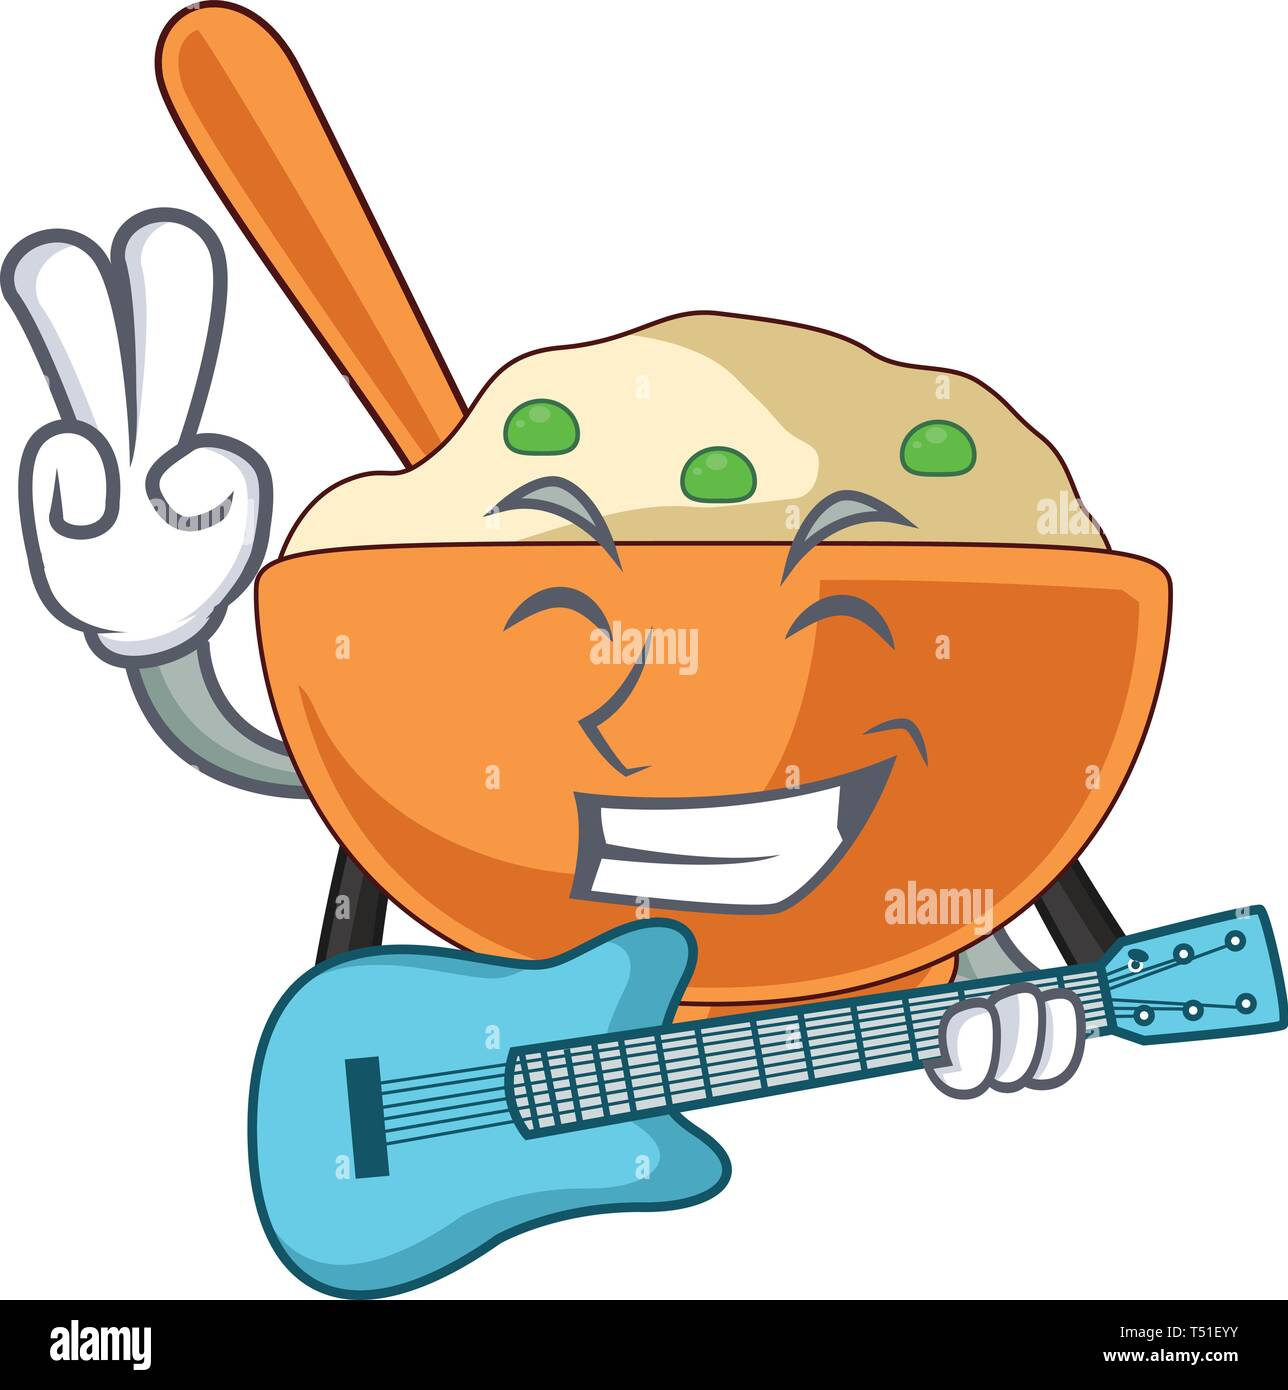 With guitar mashed potato in the shape mascot - Stock Image